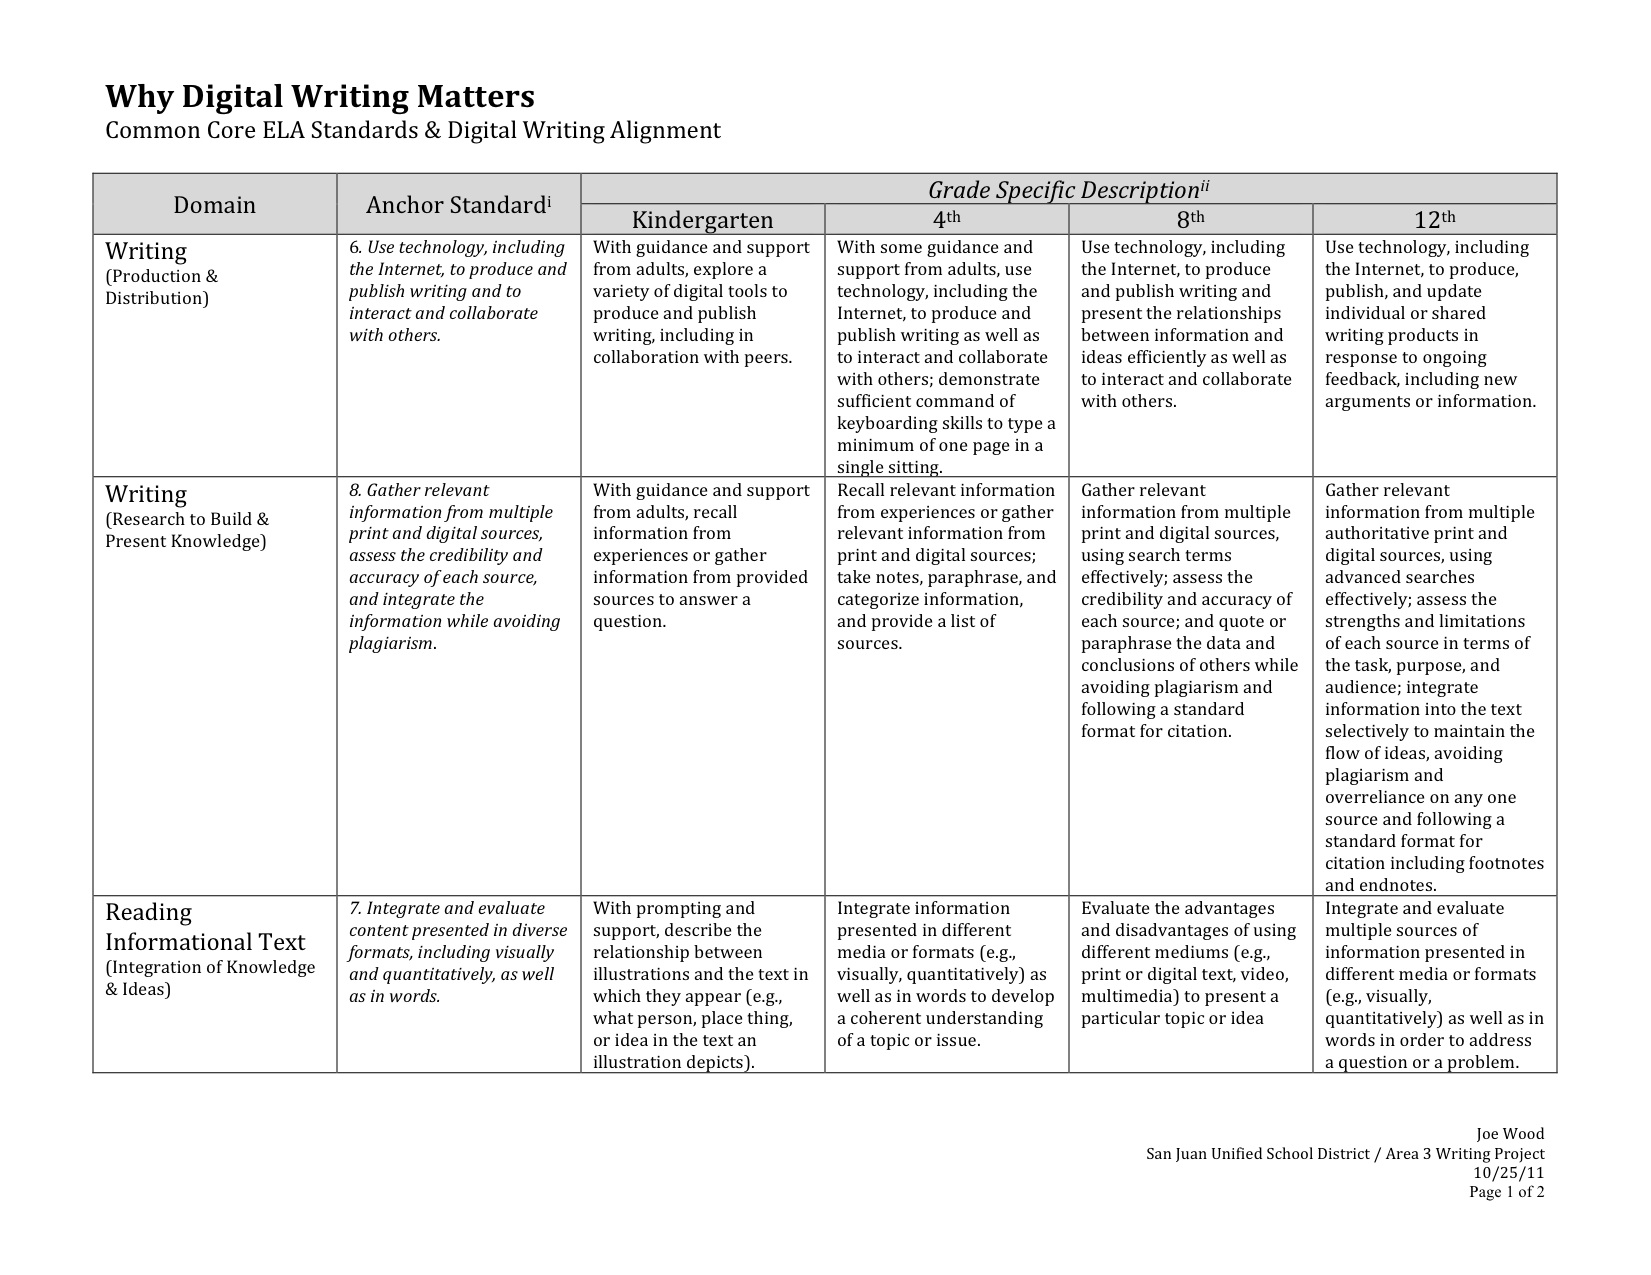 011 6th Grade Science Research Paper Rubric Why Digital Writing Matters According To The Common Core Ela Astounding Full